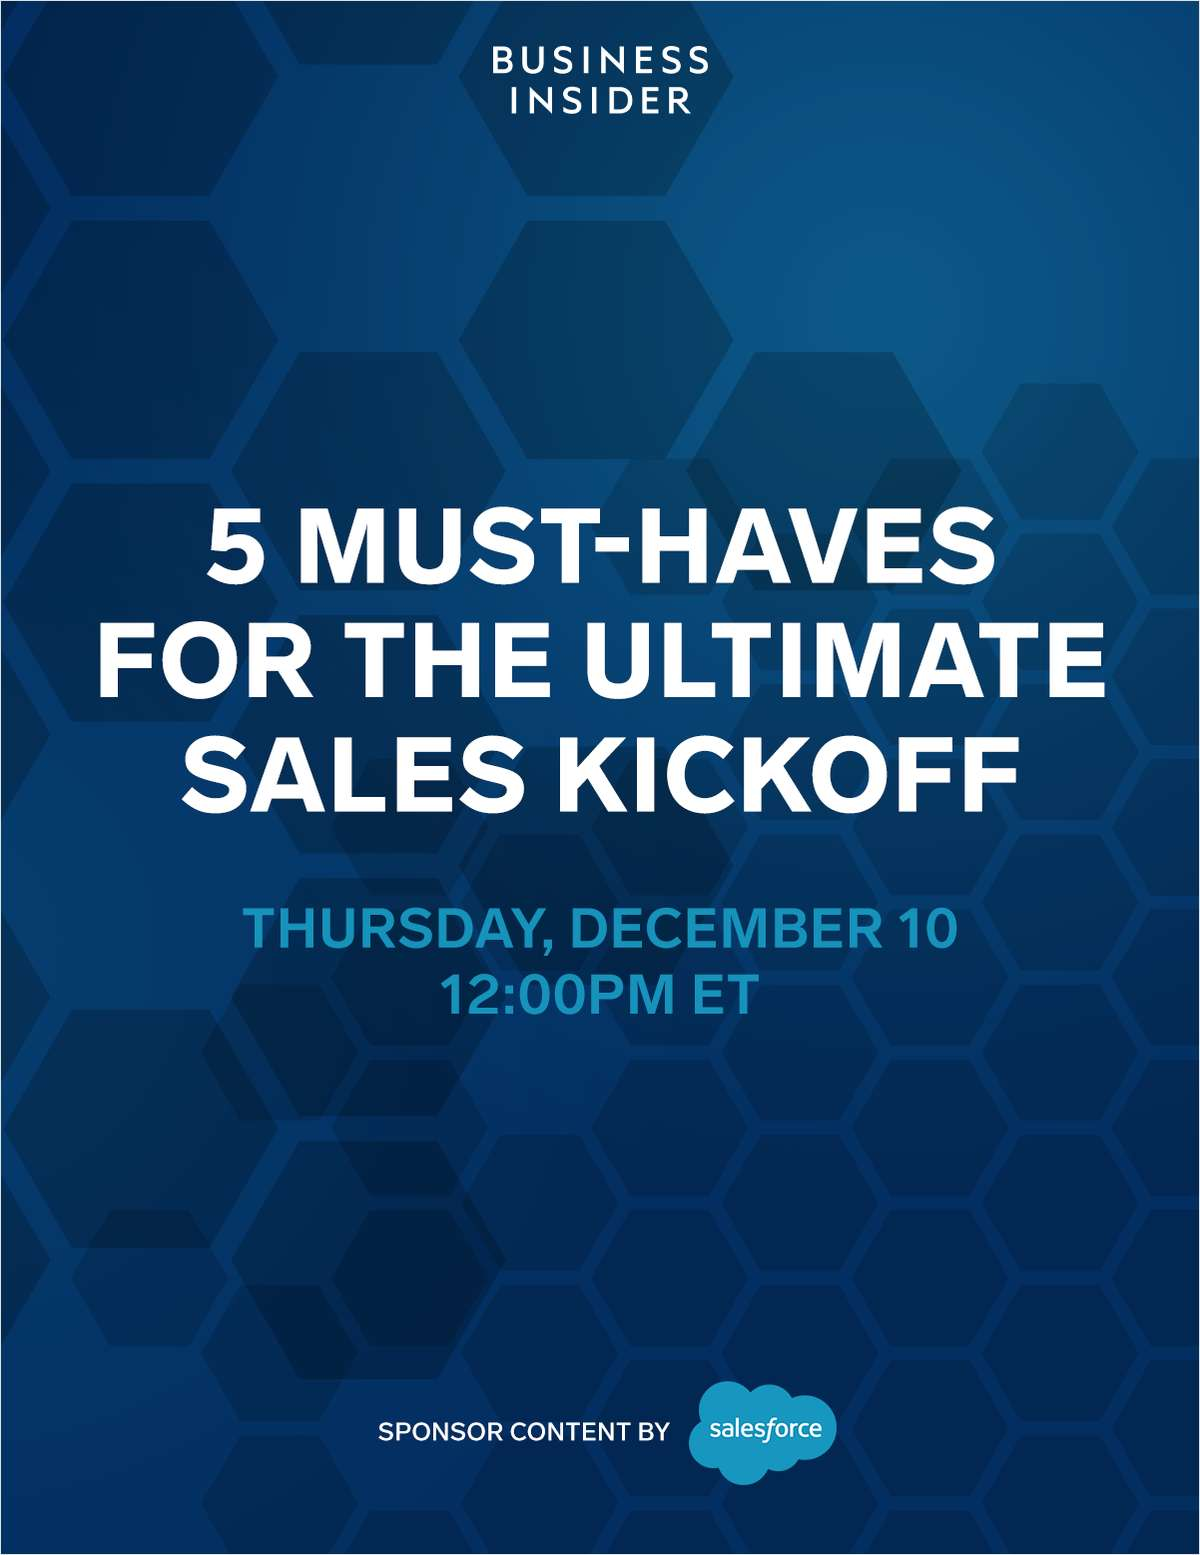 5 Must-Haves for the Ultimate Sales Kickoff